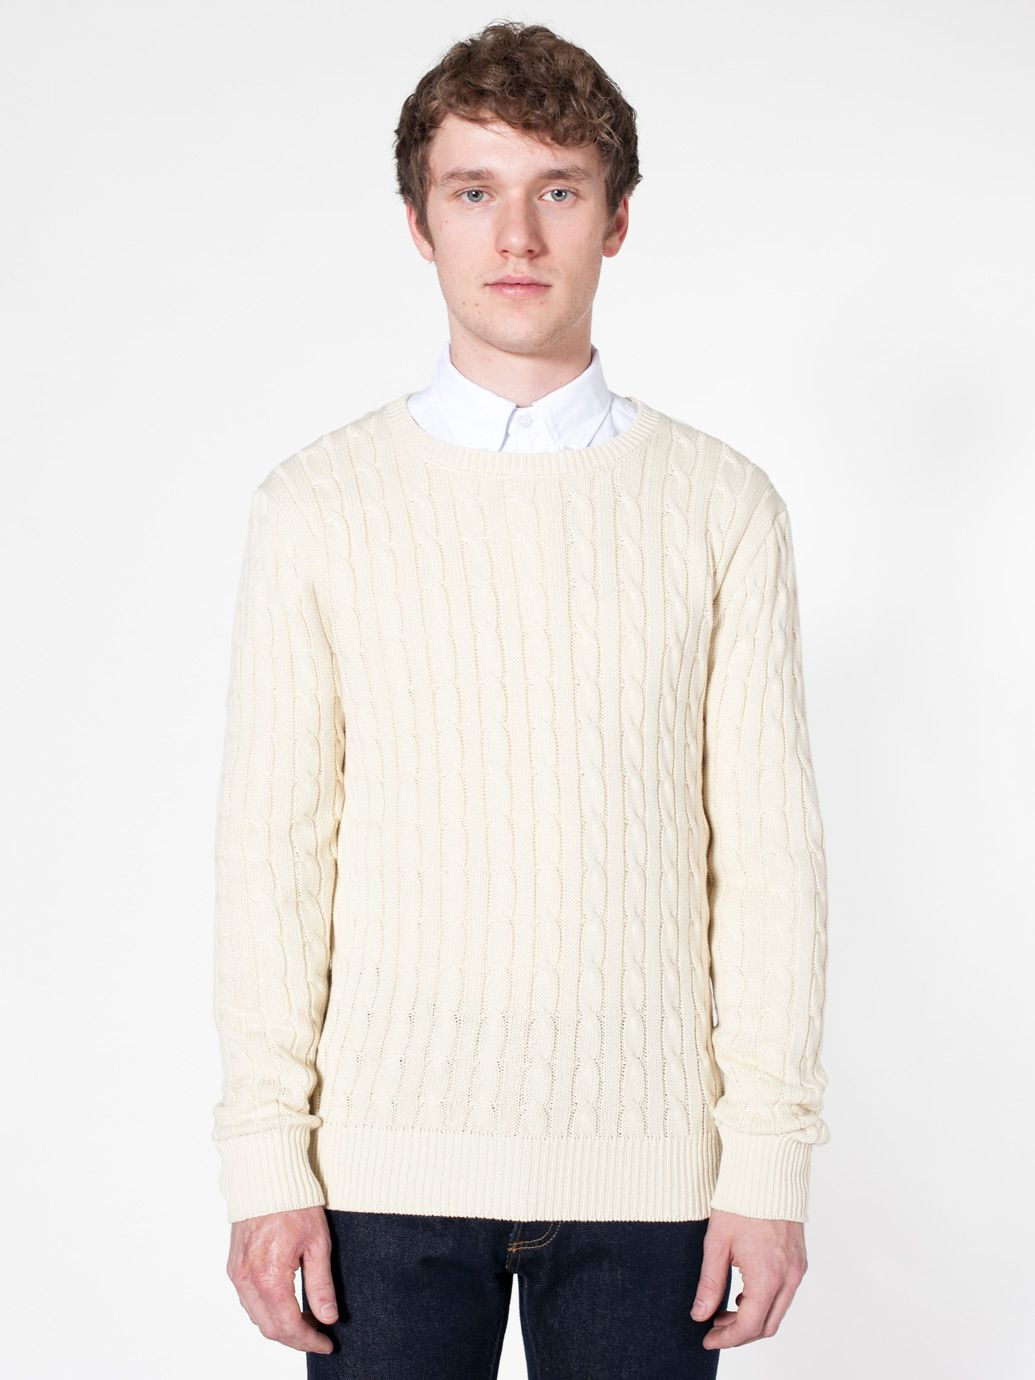 American Apparel - Men's Cable Knit Sweater | Neat Clothes ...